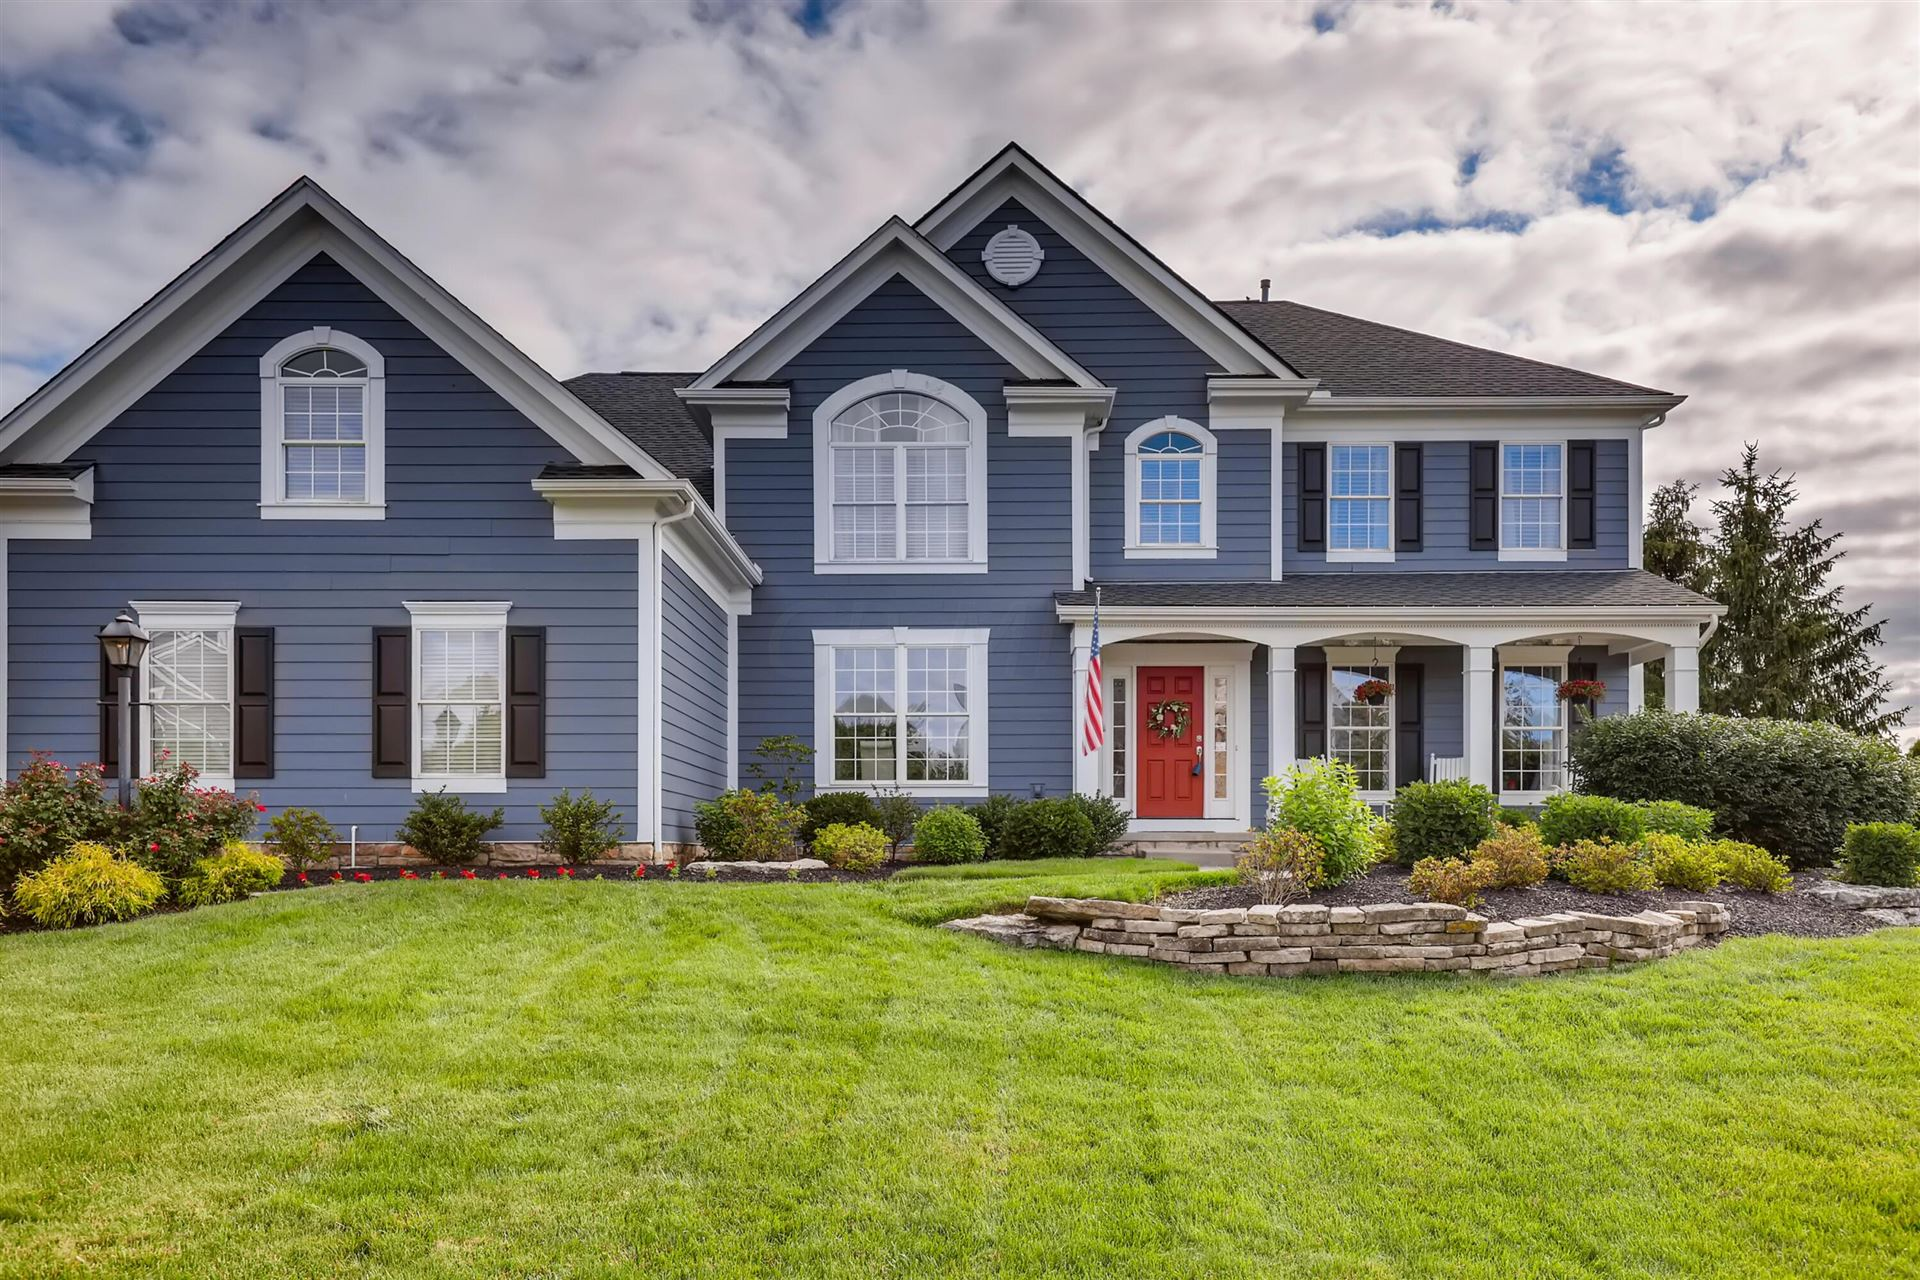 Photo of 5371 Medallion Drive W, Westerville, OH 43082 (MLS # 221021948)